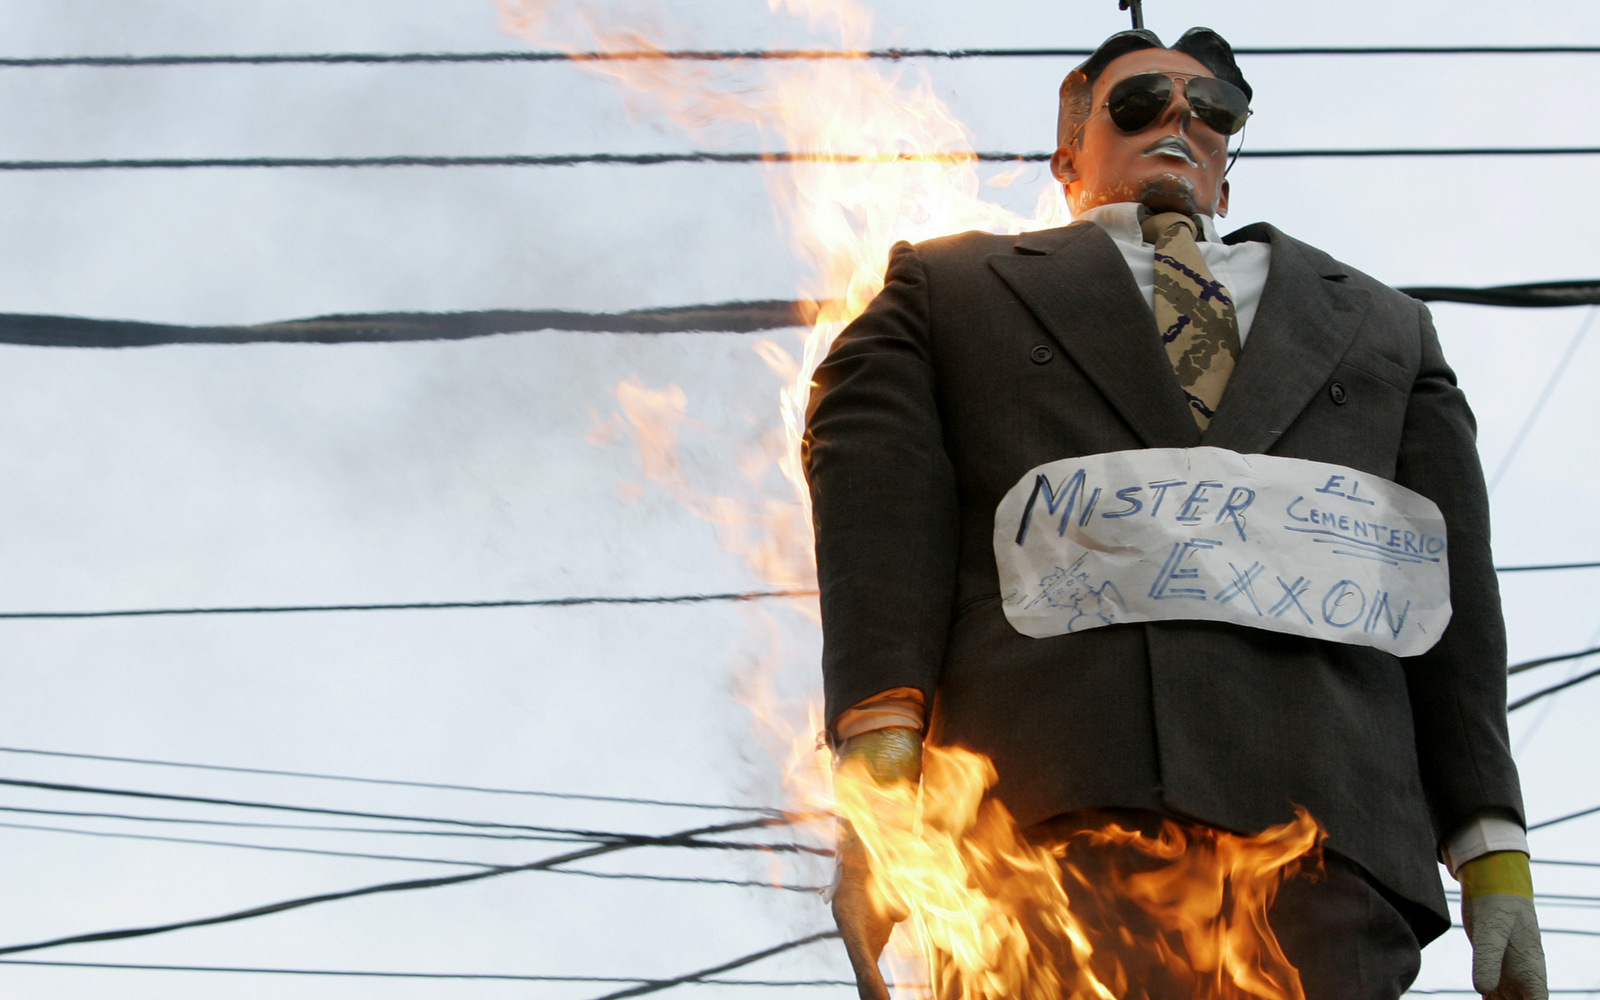 """An effigy representing Judas Iscariot, with a sign that labels it also as """"Mr. Exxon"""", referred to the Texas-based Exxon Mobil oil corporation, is burned during Holy Week in Caracas, March 23, 2008. (AP/Howard Yanes)"""